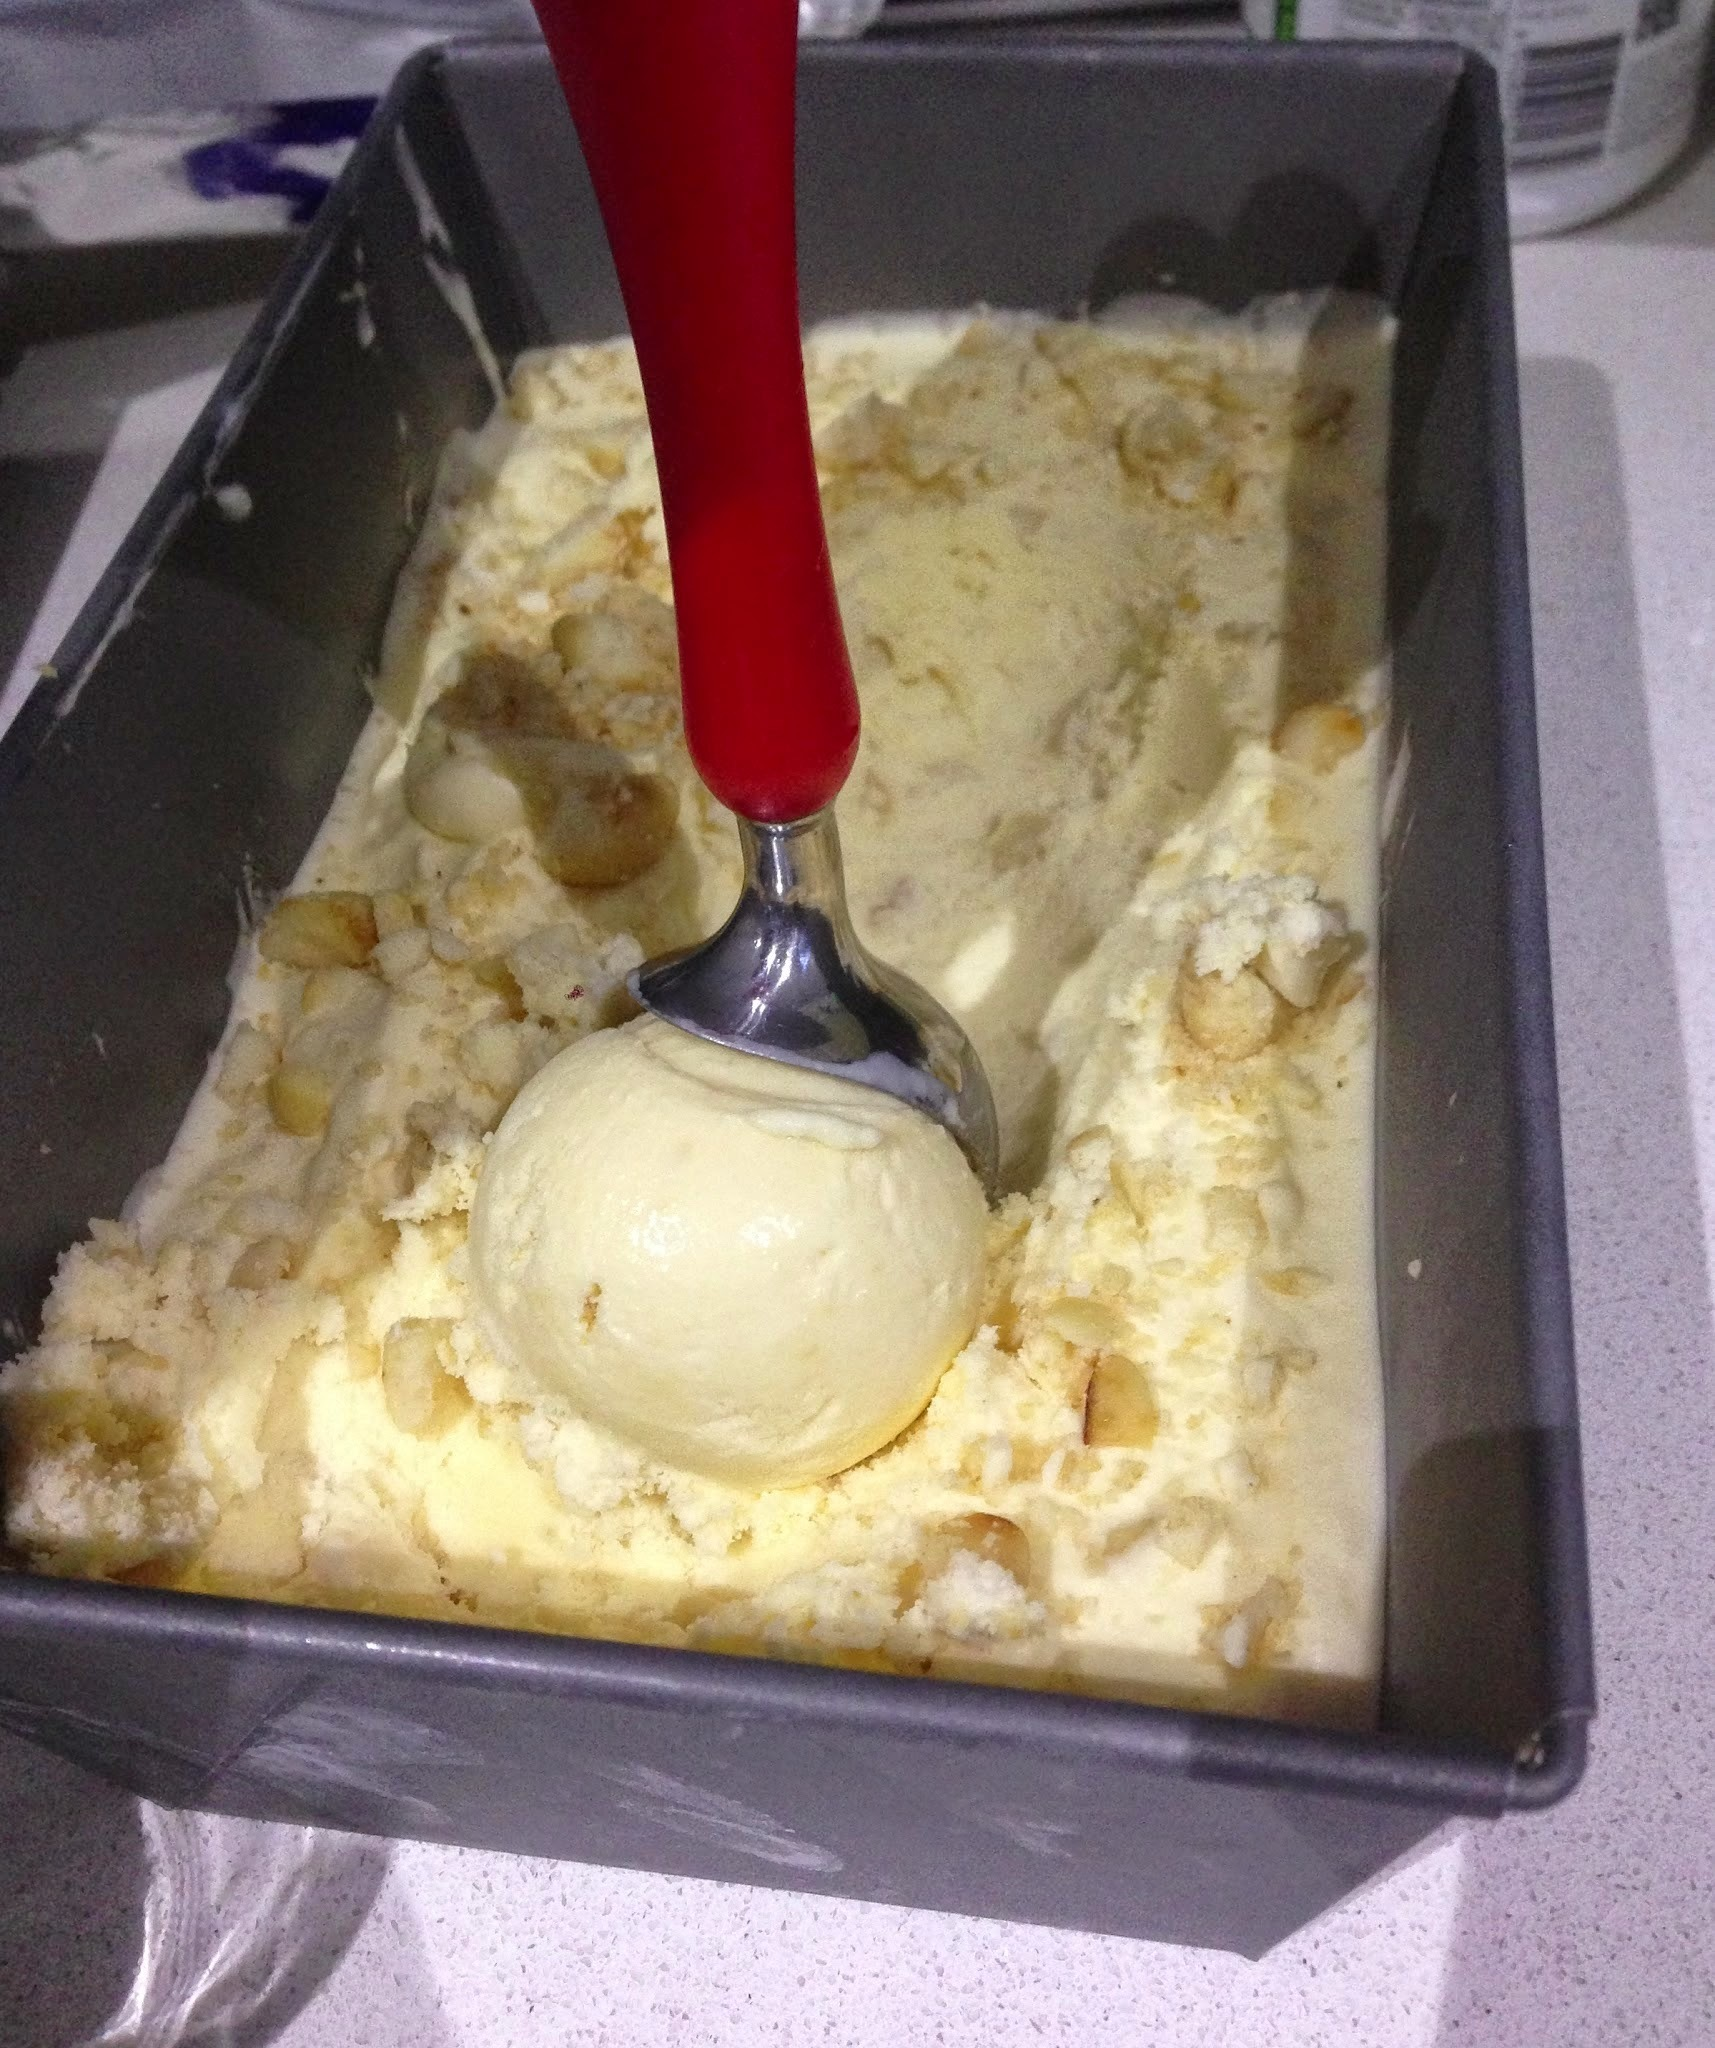 Macadamia Nut Ice Cream recipe